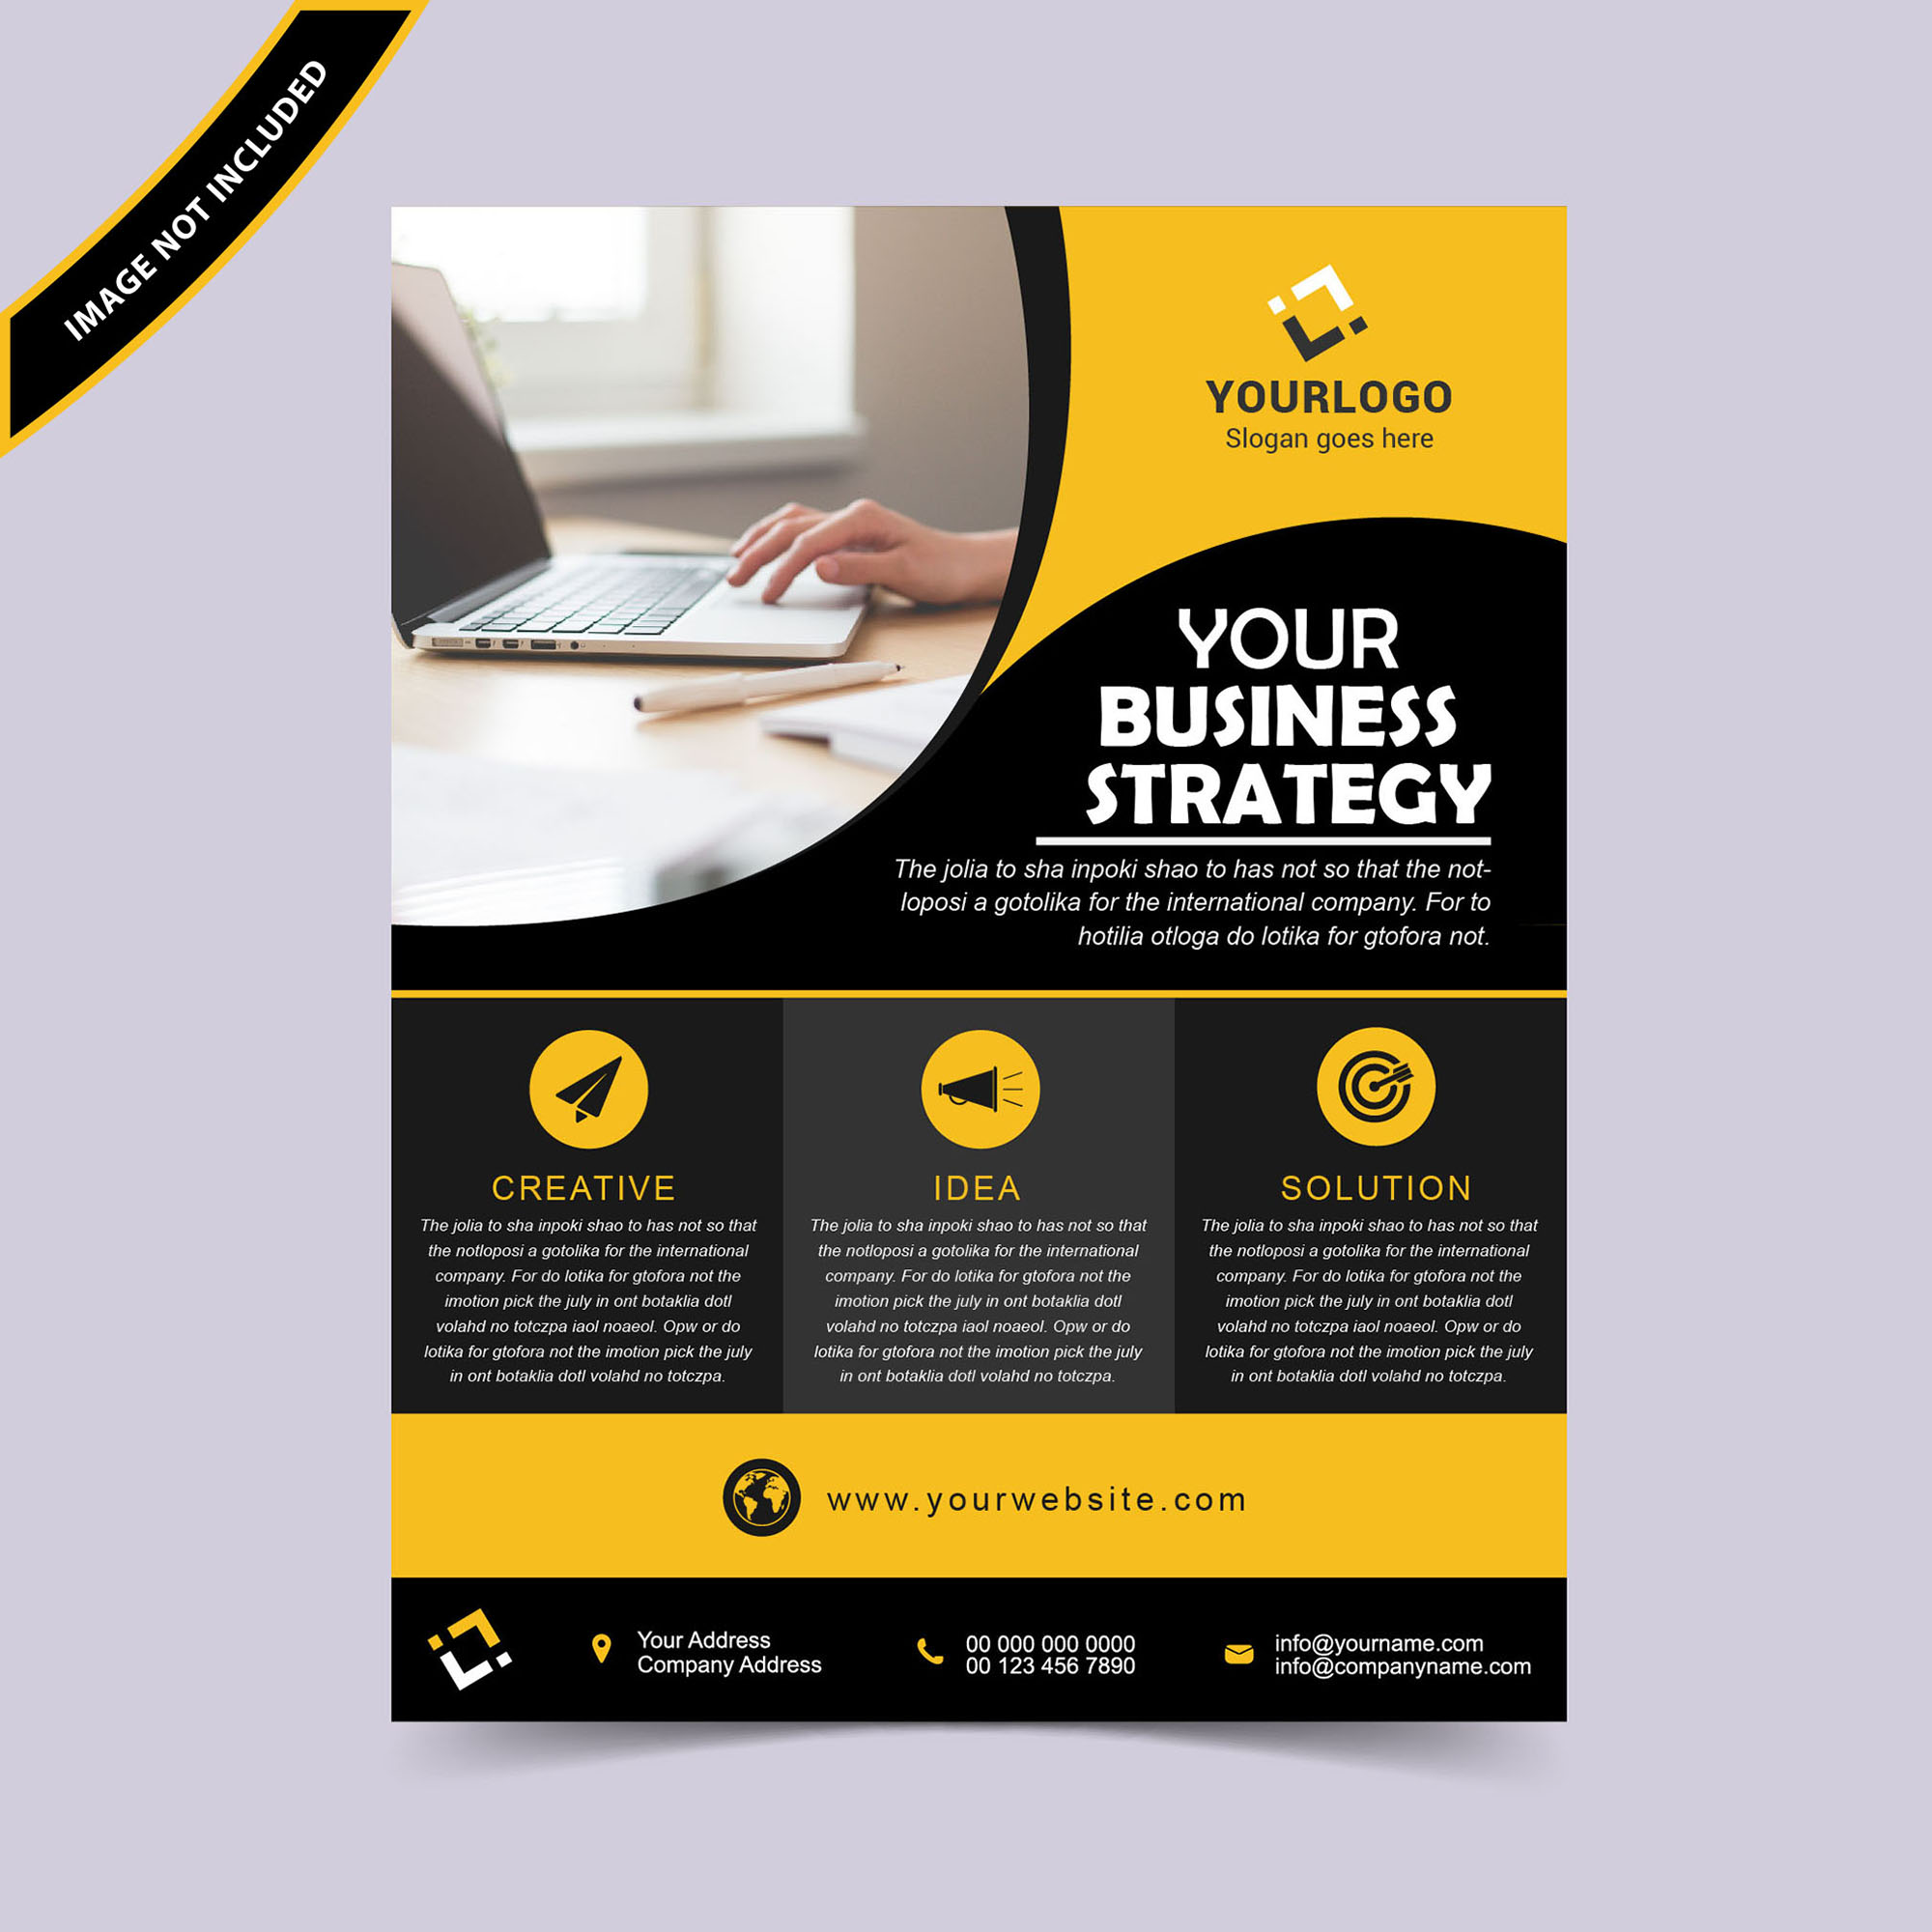 Corporate business flyer template free download wisxi flyers flyer design flyer template free flyer design abstract business friedricerecipe Images